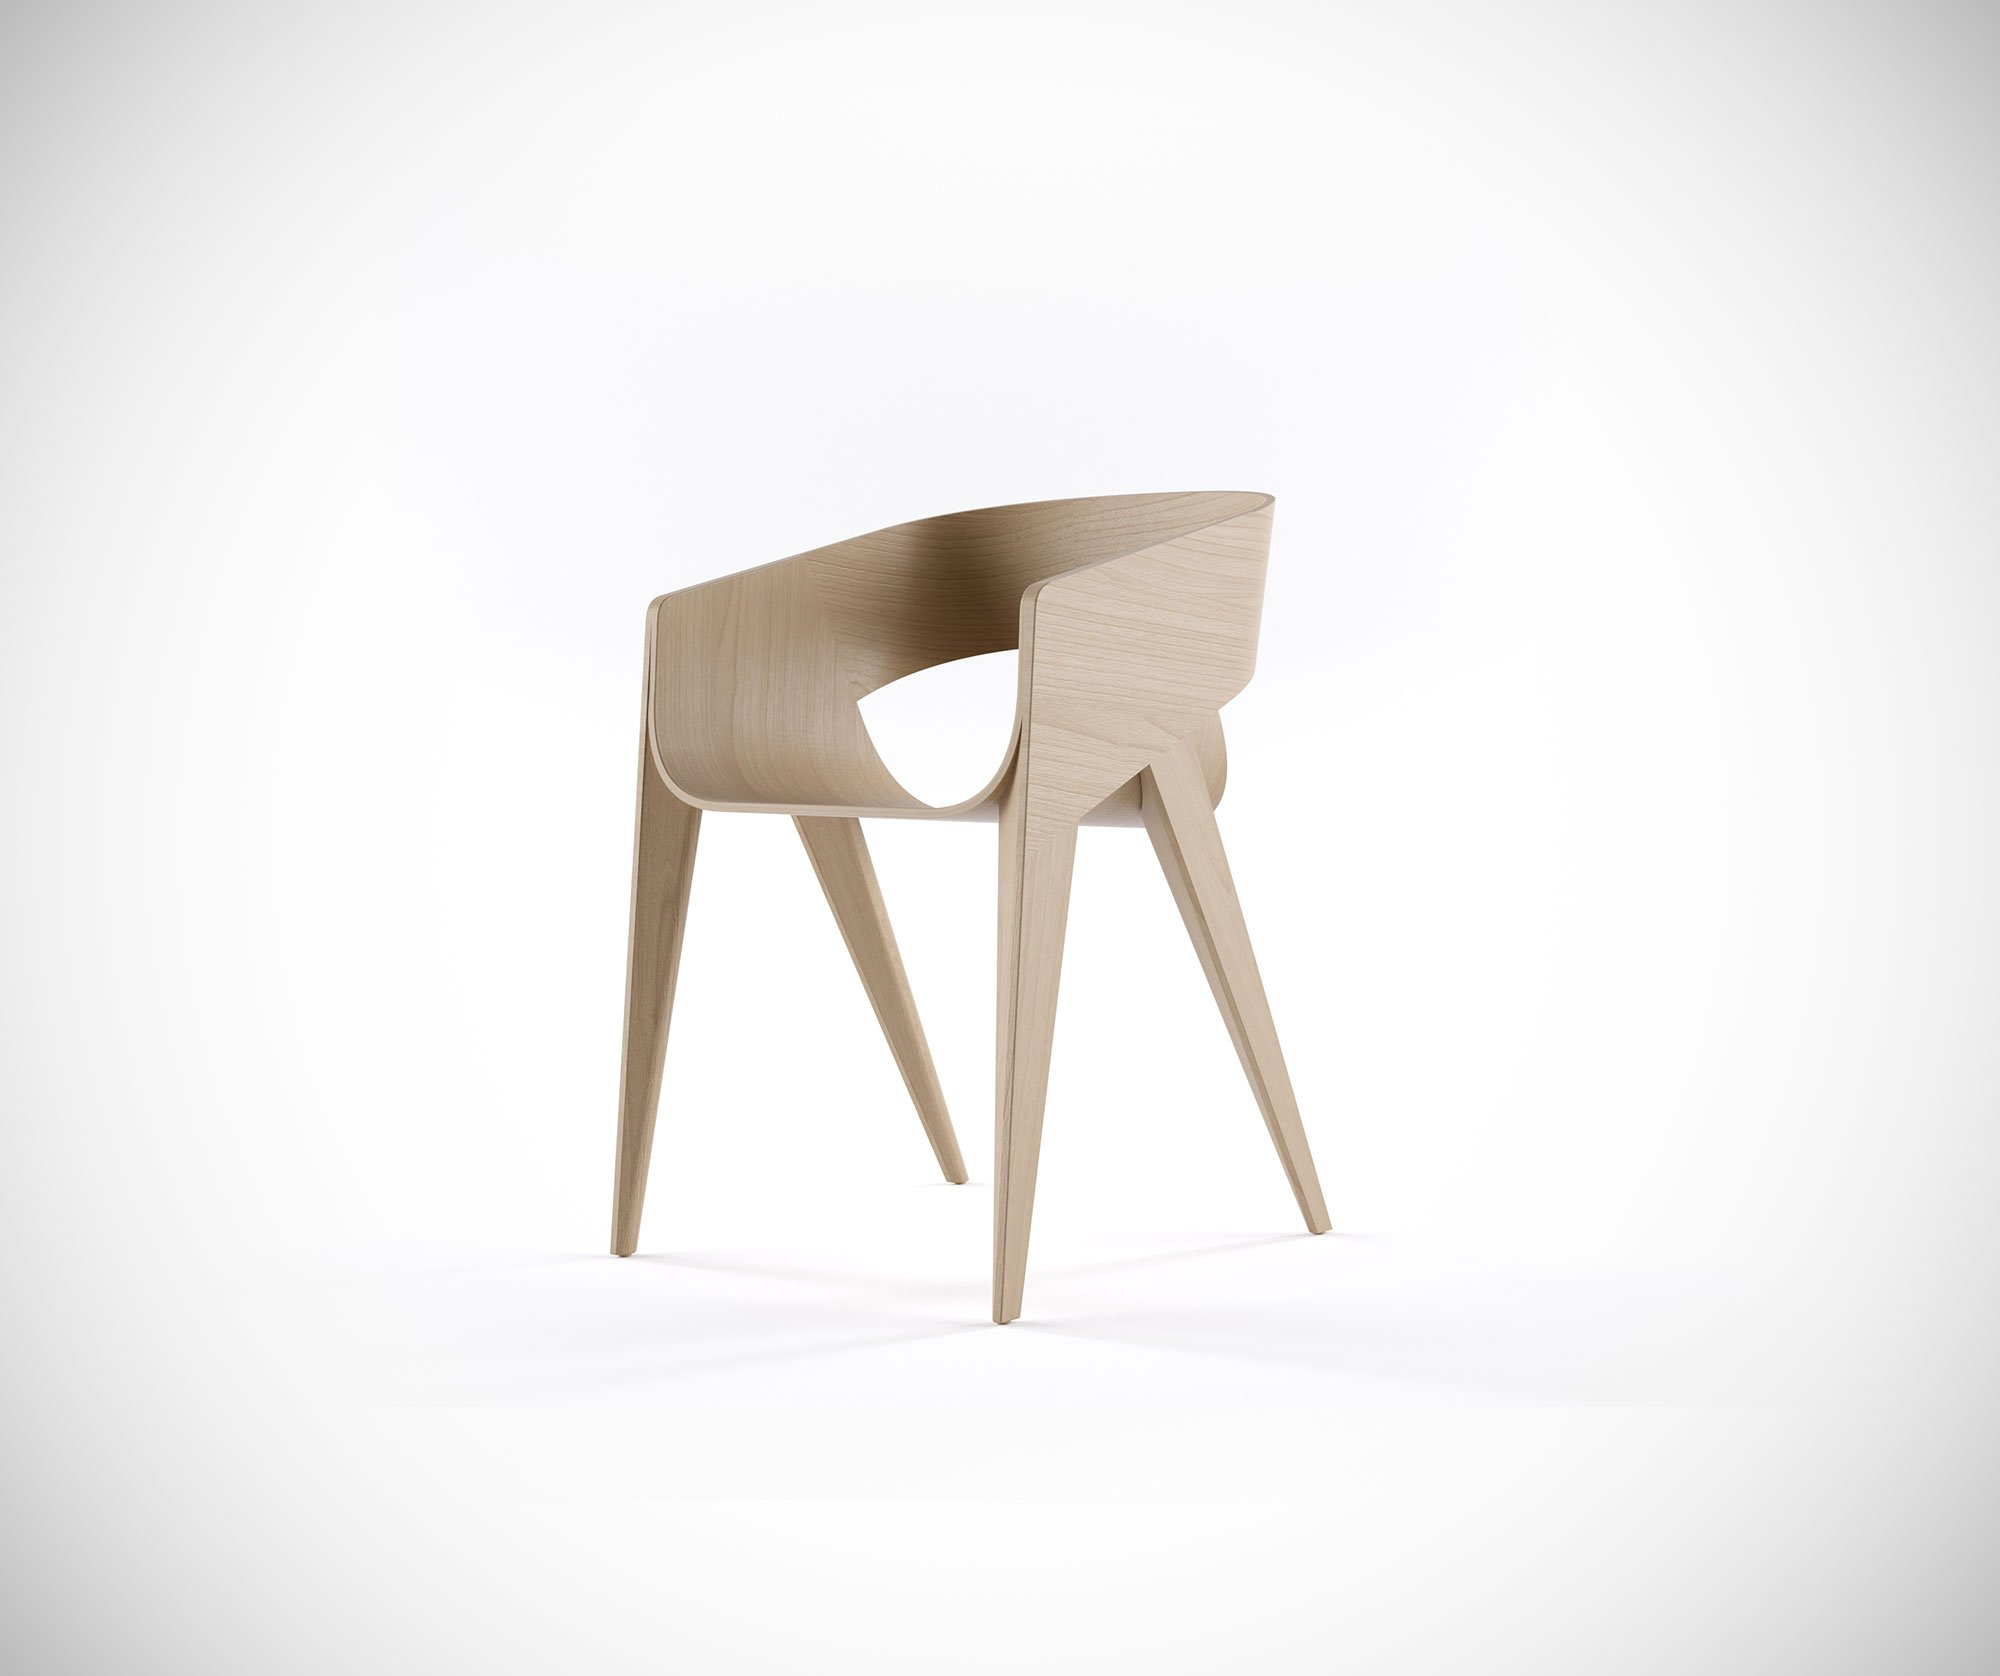 Most Comfortable Accent Chairs The Elegant And Minimalist Slim Chair By Christophe De Sousa